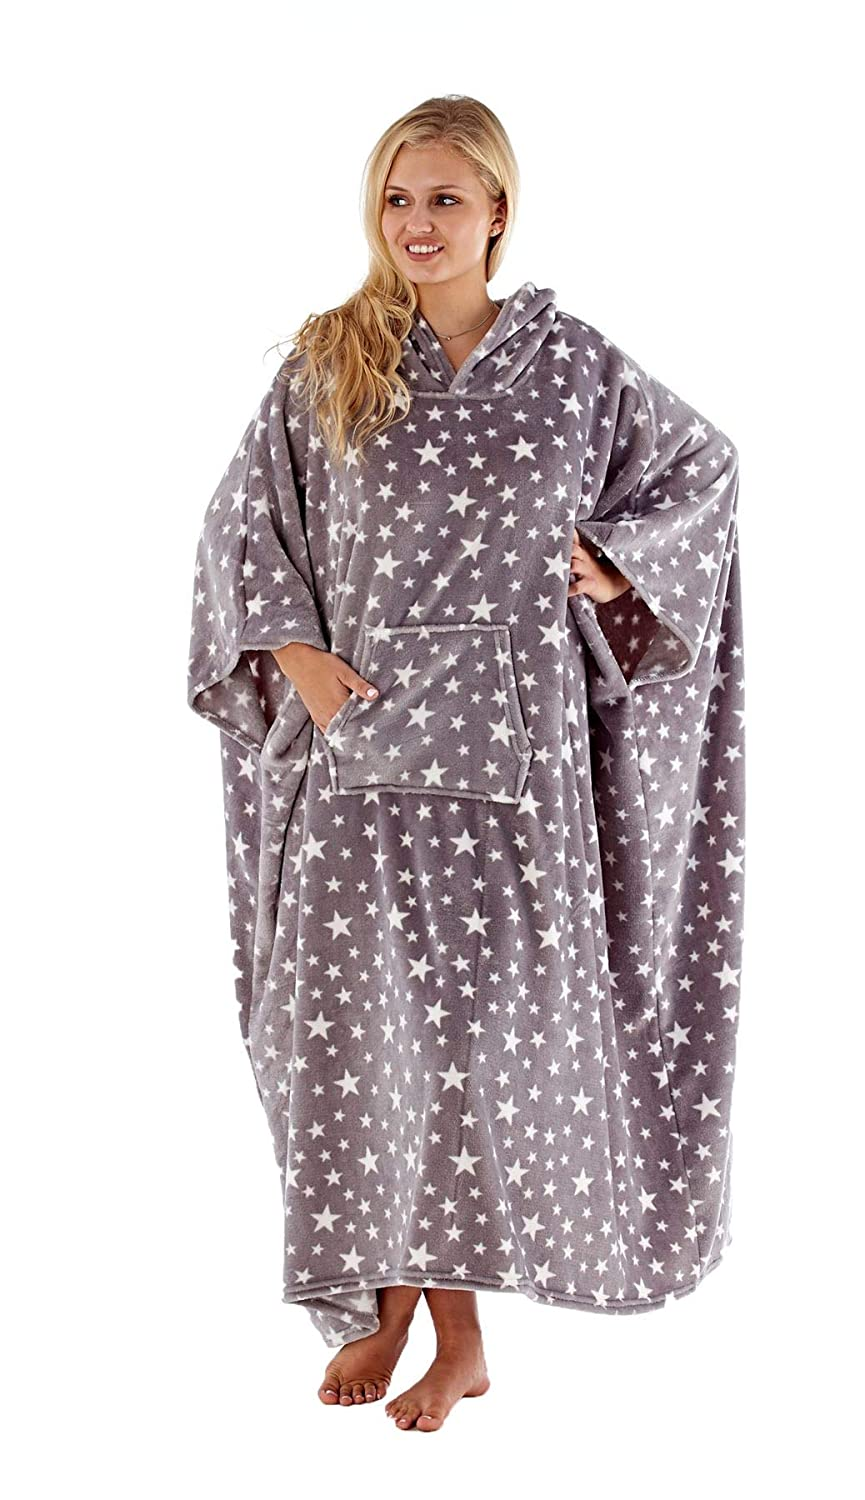 New Womens Hooded Full Length Soft Fleece All in One Poncho Blanket Bath Robe